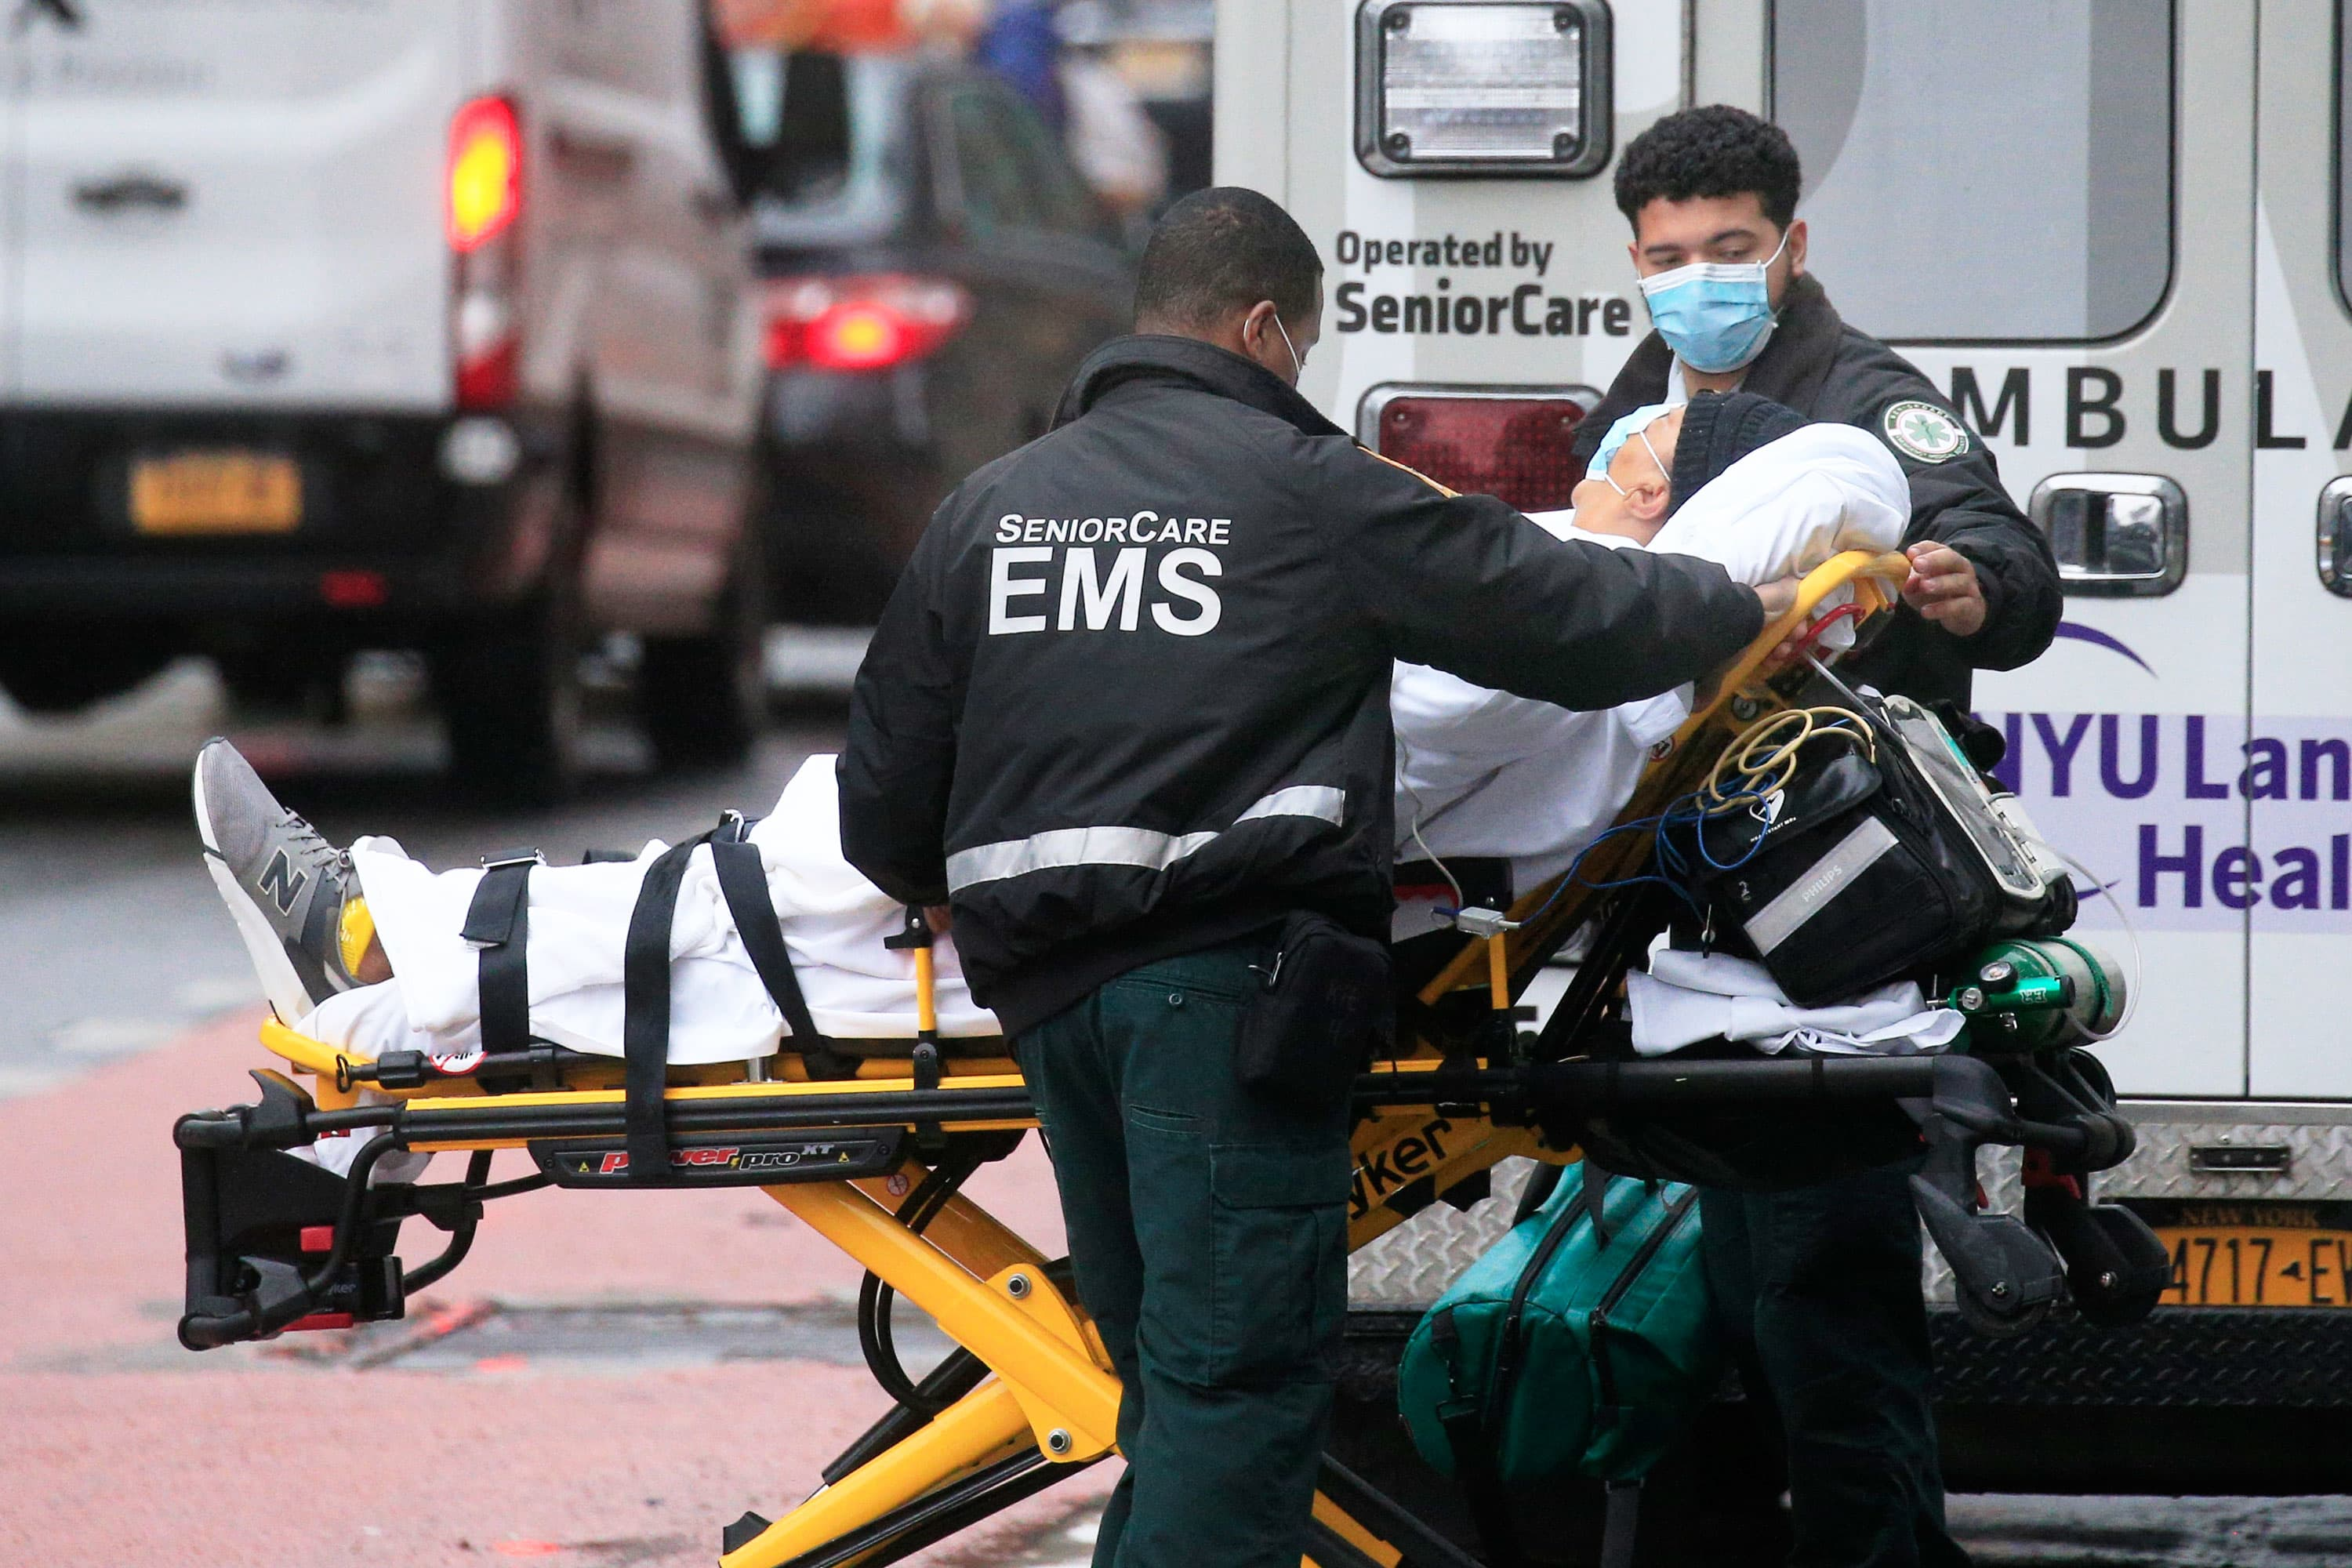 New York implements emergency hospital measures as Covid cases surge, Gov. Cuomo says